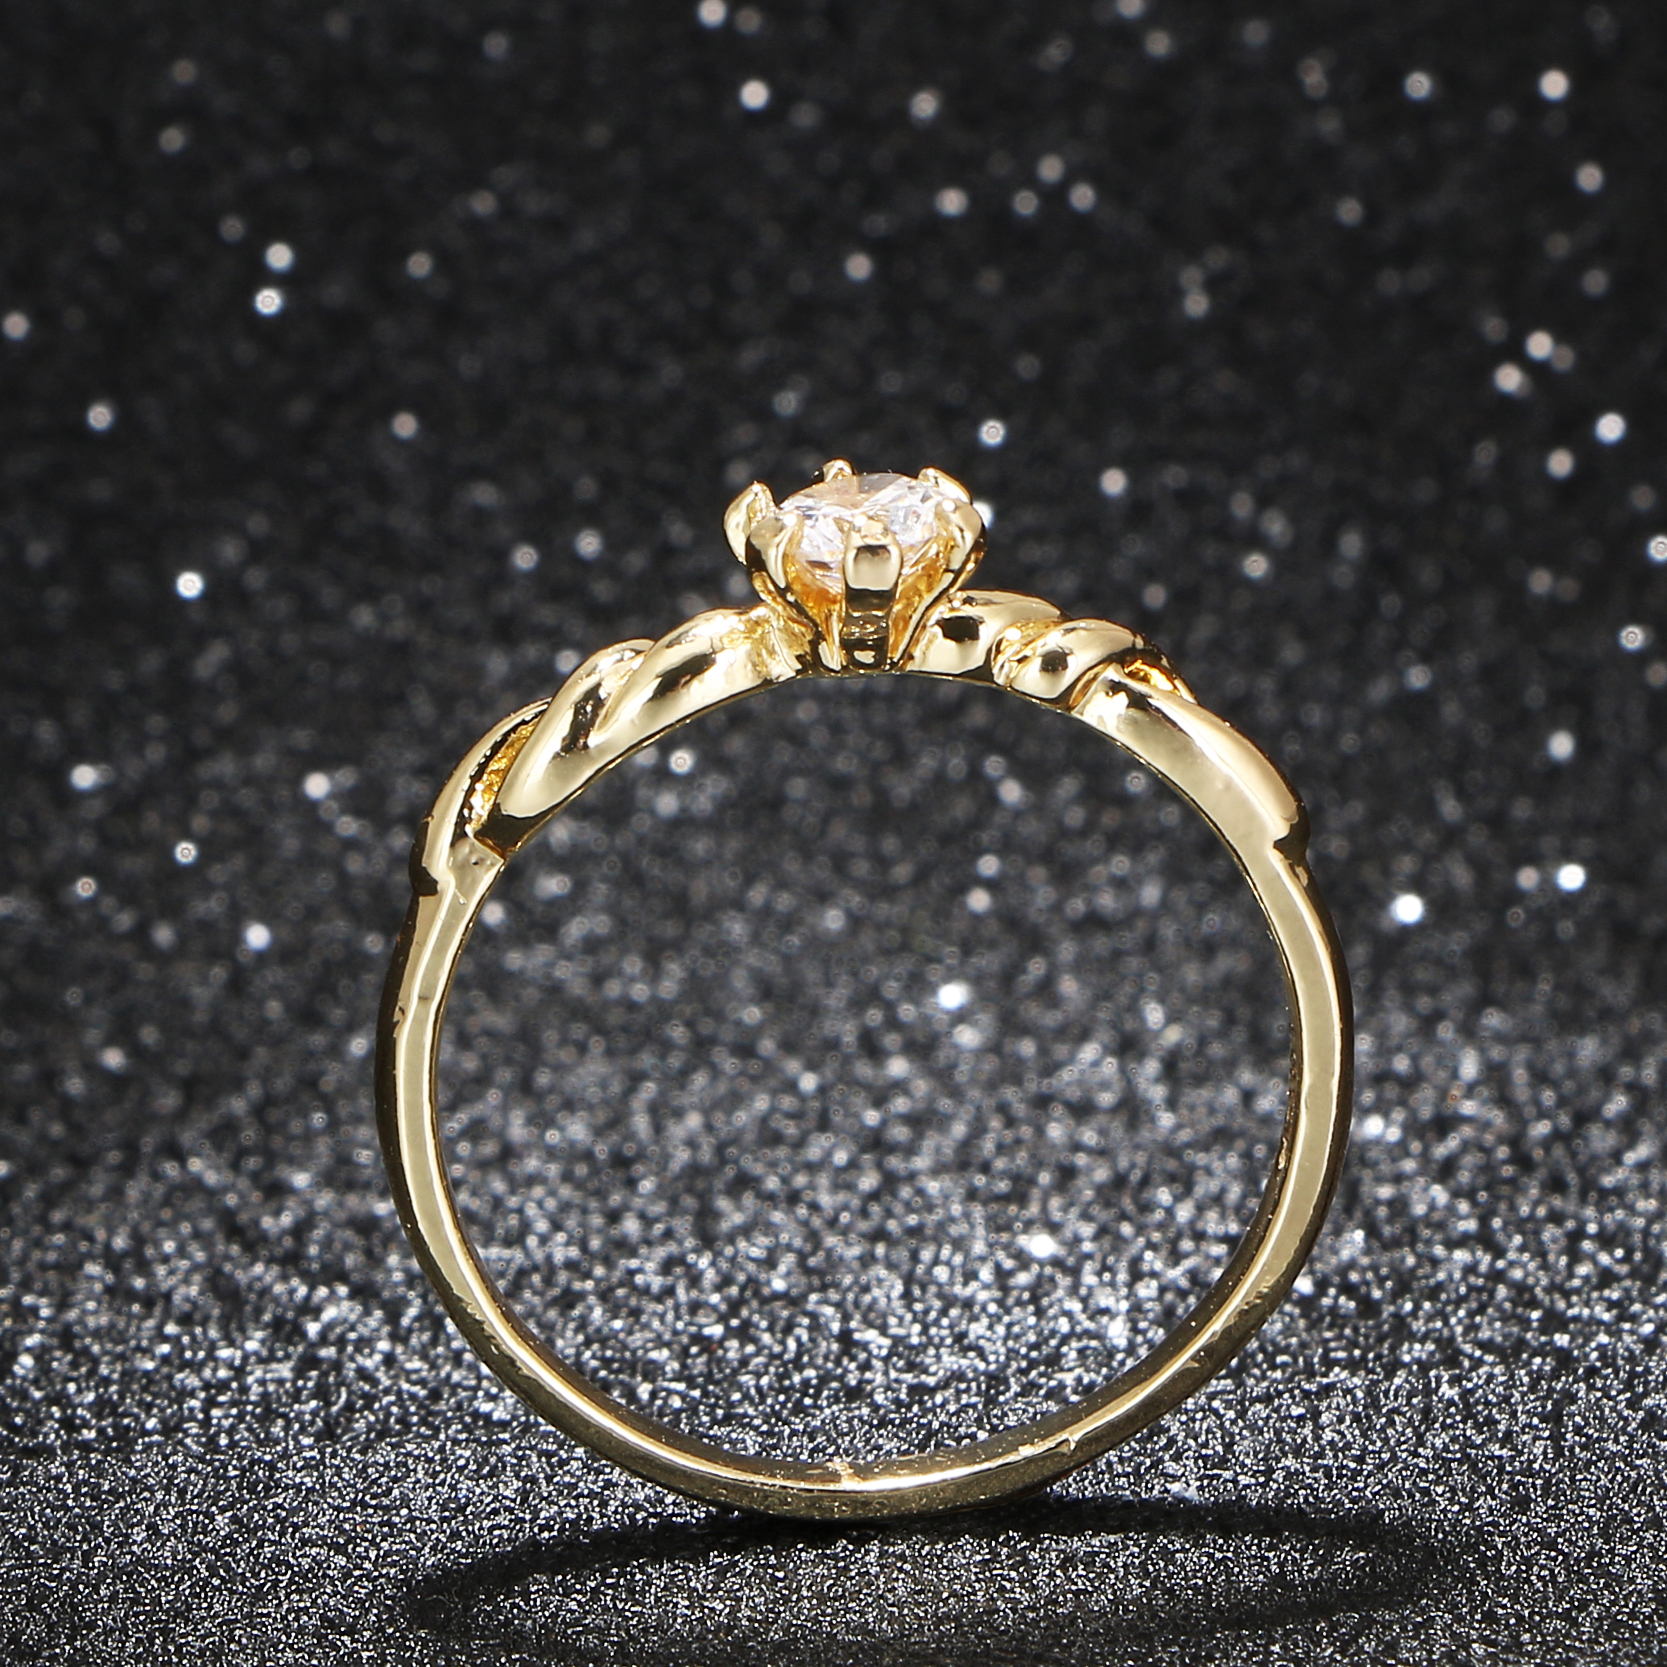 Unique Design Twist Gold Plated Finger Ring Crystal. Cad Wedding Rings. Antique Engagement Rings. Pierced Wedding Rings. Round Blue Wedding Rings. 10k Gold Rings. Illusion Rings. Six Engagement Rings. Metal Wedding Rings